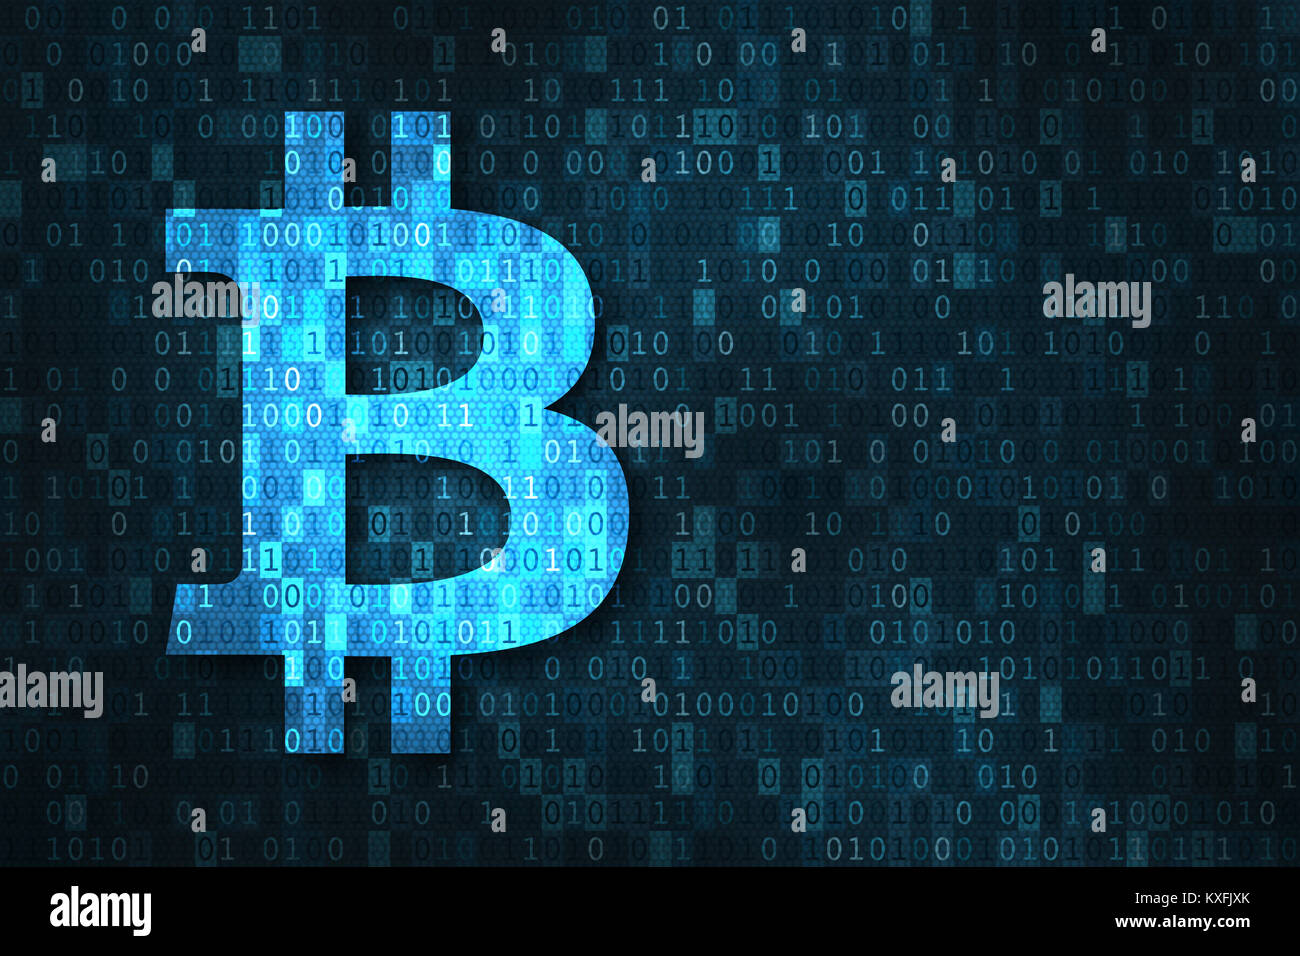 Bitcoin trading network concept illustration stock photos bitcoin cryptocurrency based on blockchain technology concept with btc currency symbol over binary digits code matrix buycottarizona Choice Image